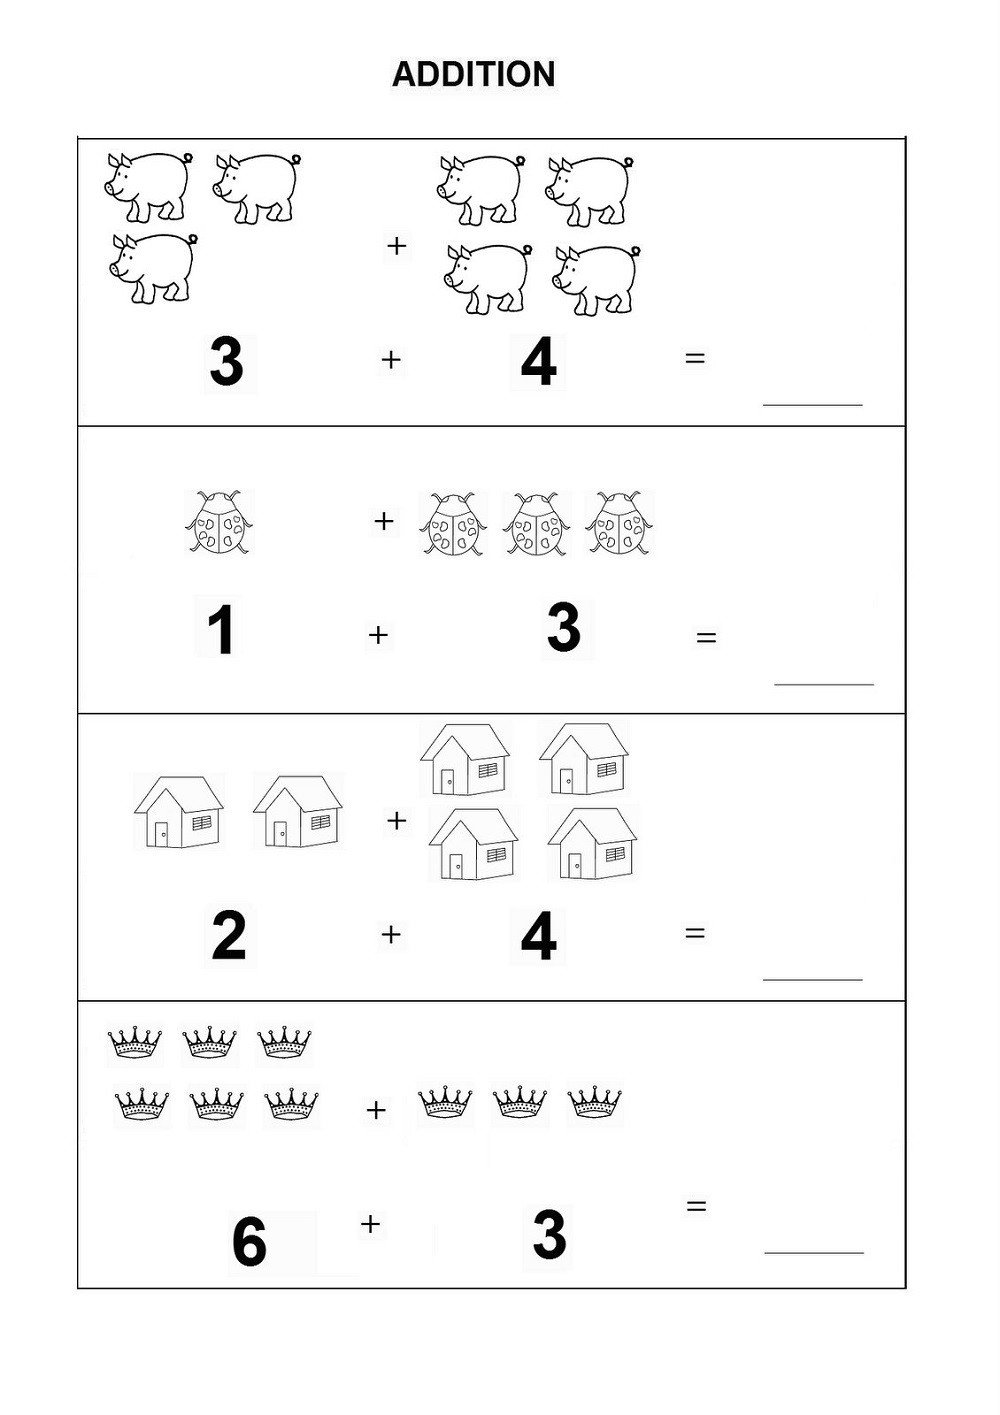 Simple Addition Worksheets Kindergarten Addition Worksheets for Kindergarten 2019